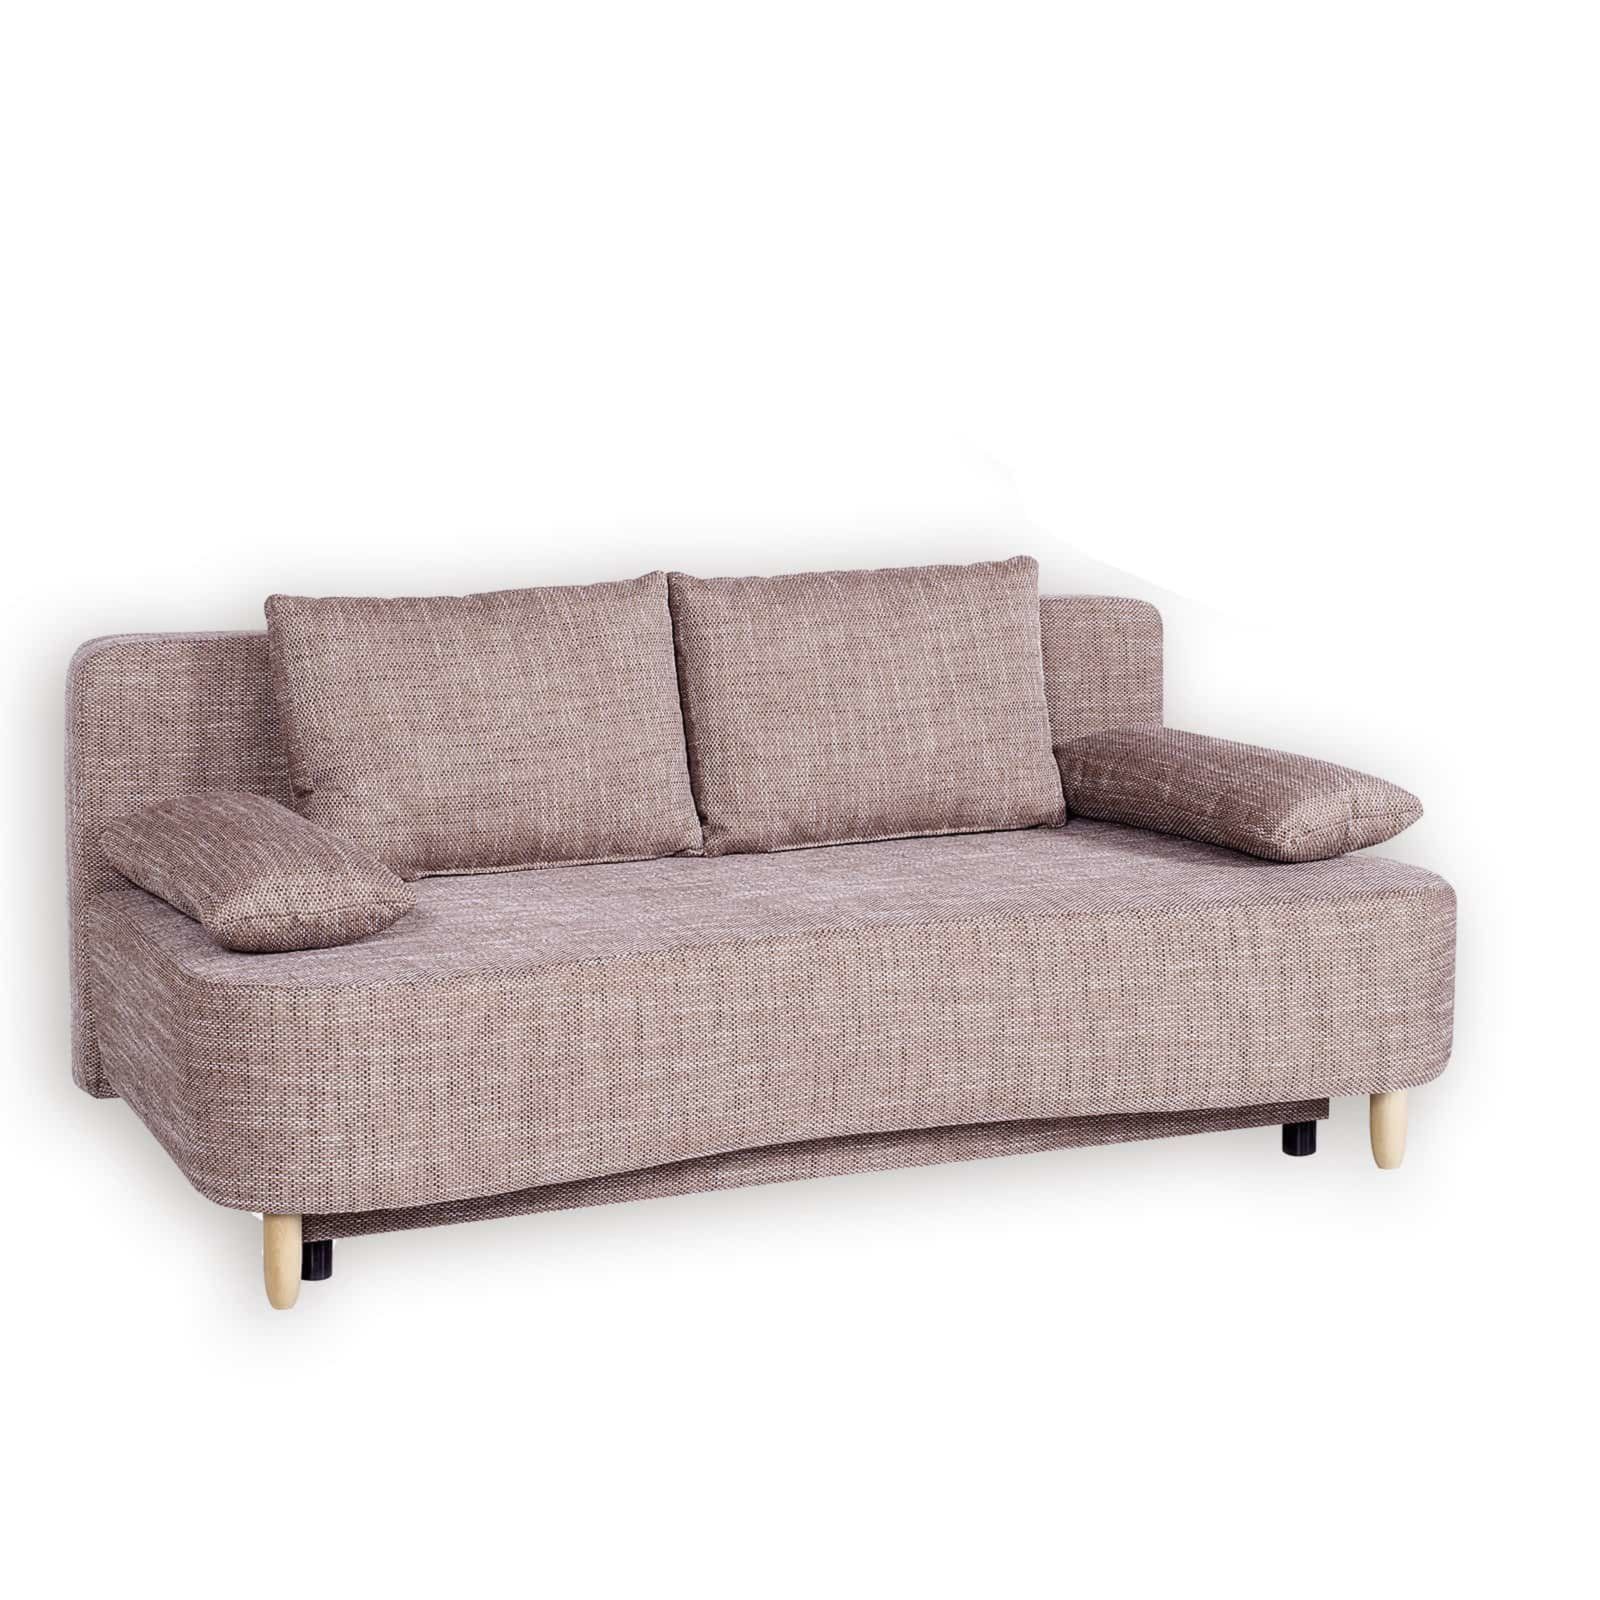 schlafsofa cappuccino federkern liegefunktion schlafsofas sofas couches m bel. Black Bedroom Furniture Sets. Home Design Ideas